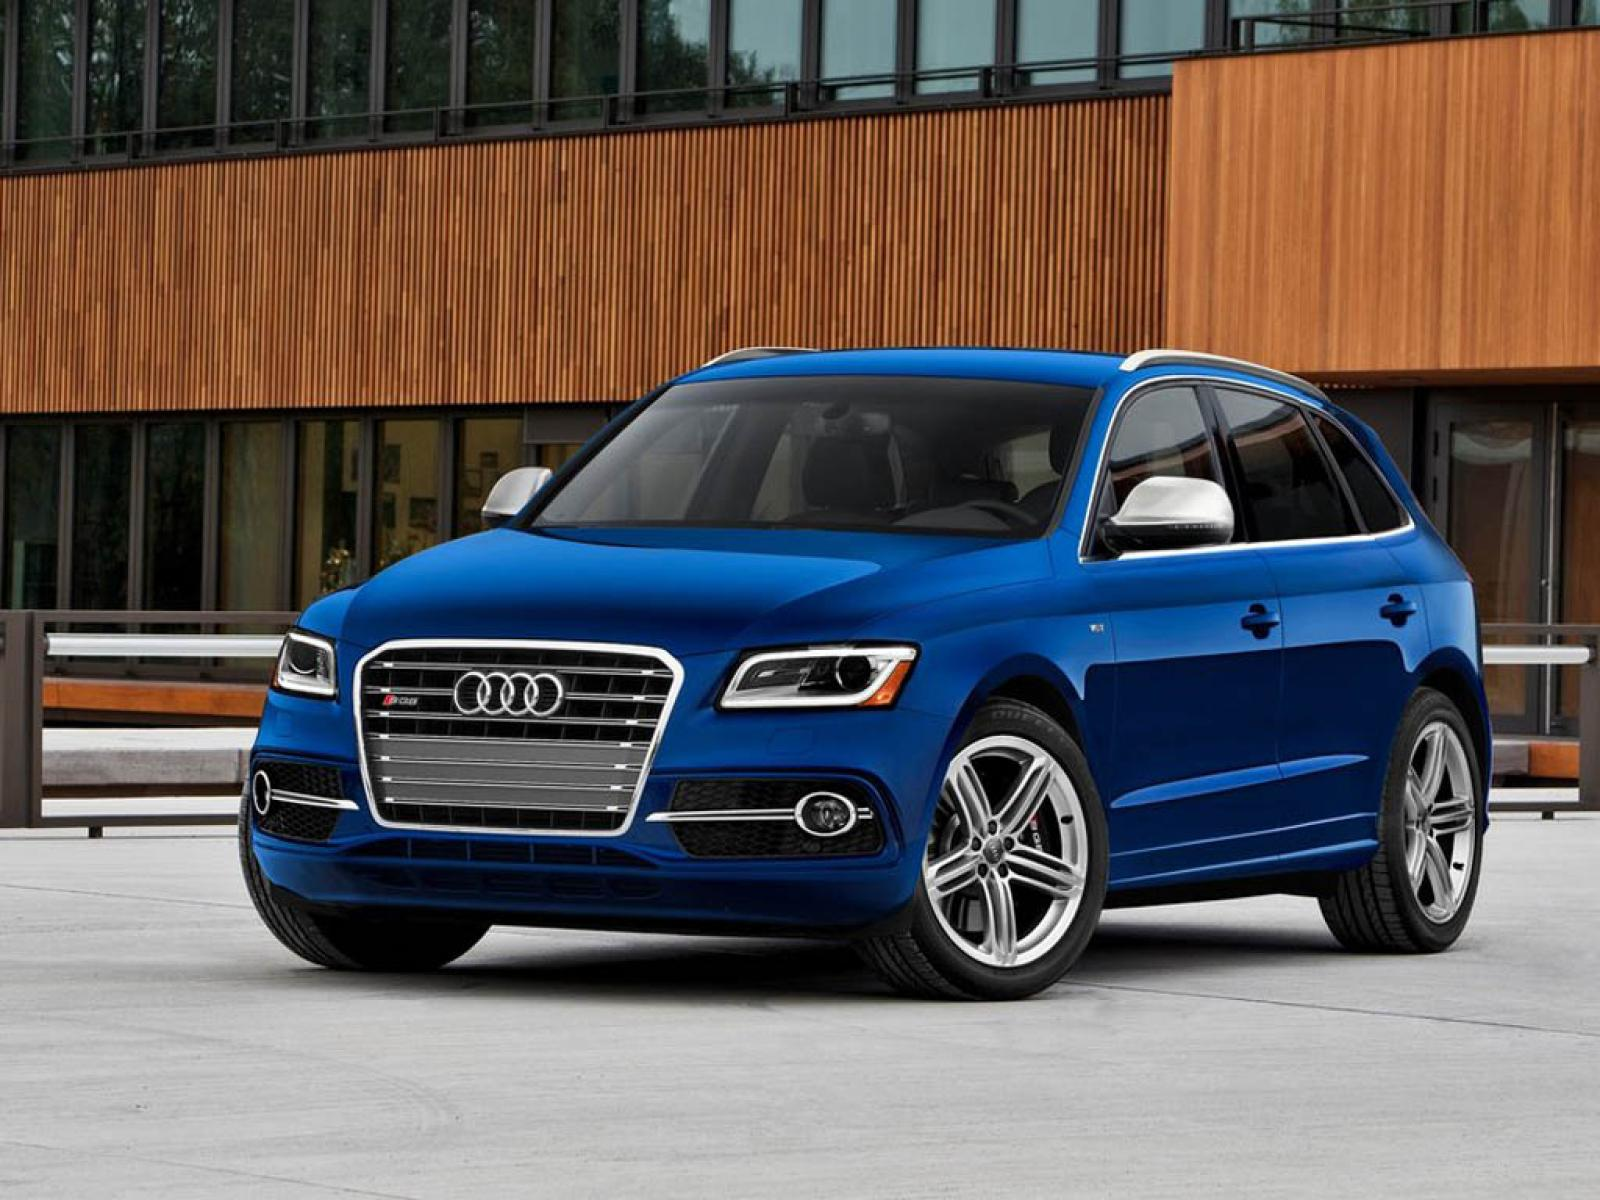 audi condition at for a amazing great sale popular details used